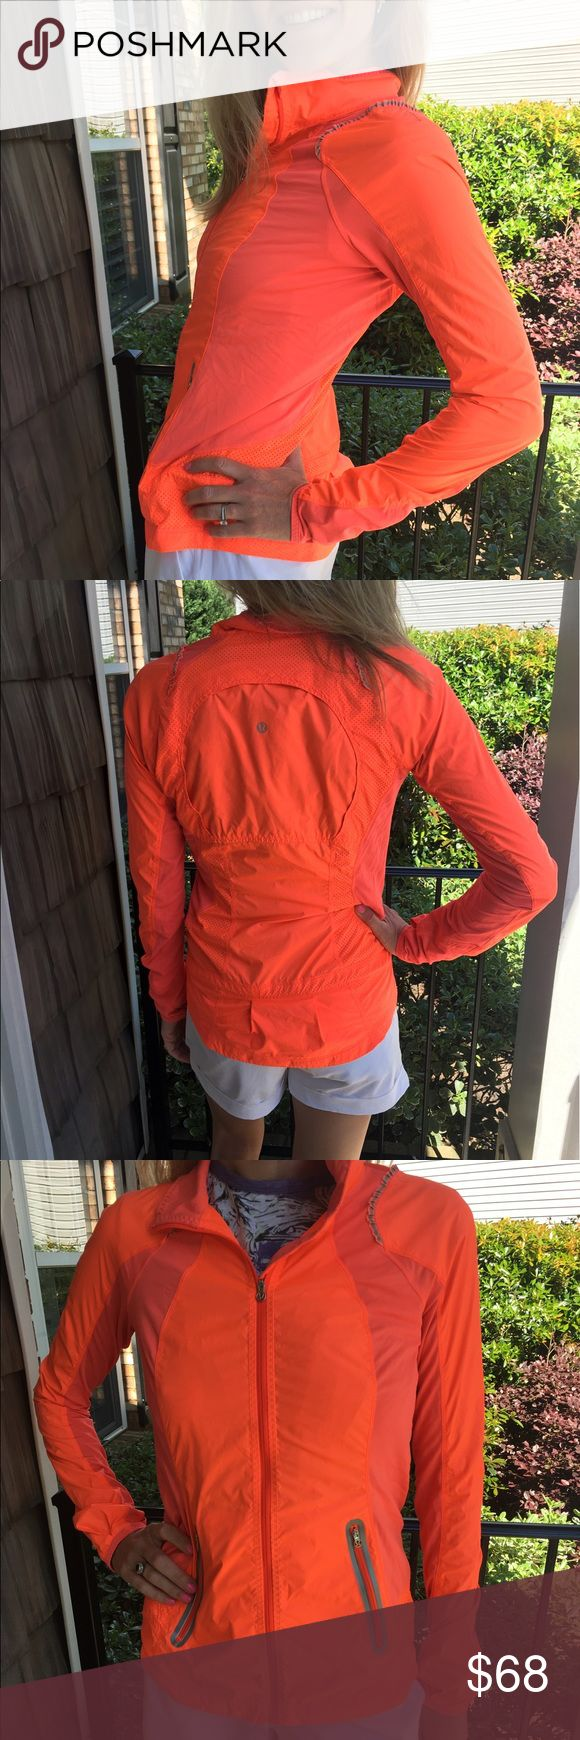 Lululemon orange running rain jacket In excellent condition. Beautiful bright orange zip up jacket. Reflective and a perfect spring weight. Thanks for looking.💕 lululemon athletica Jackets & Coats